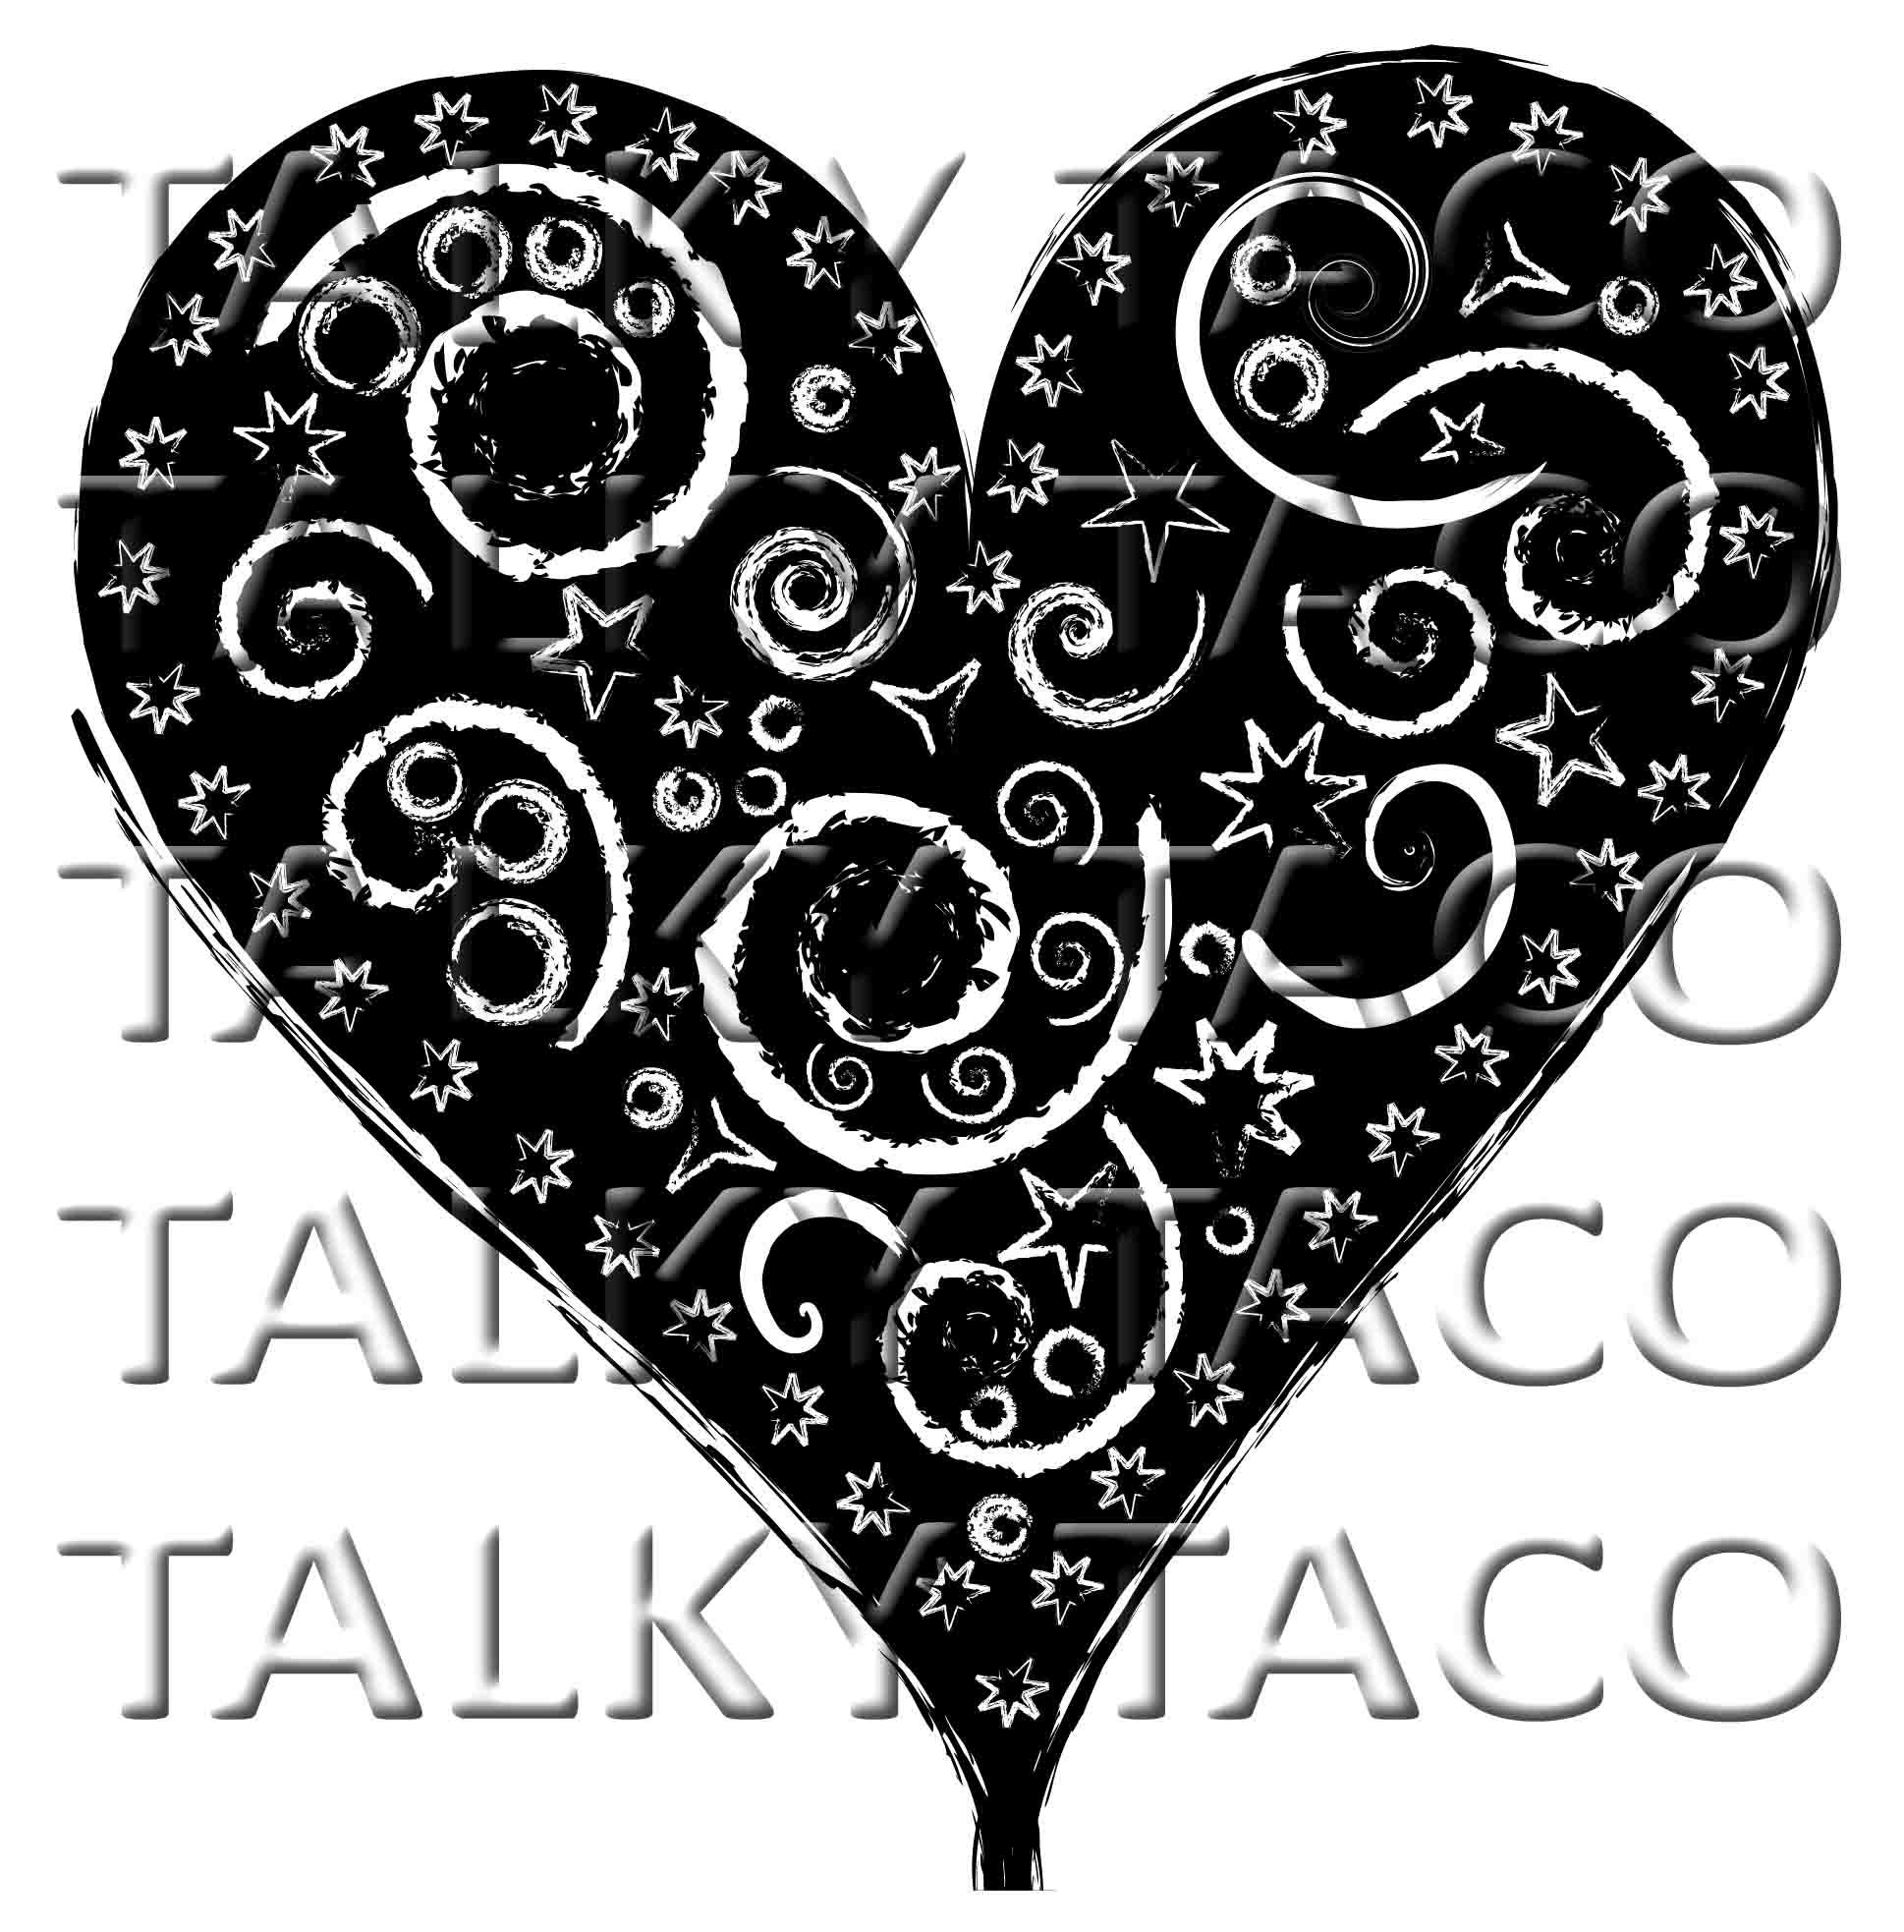 Folk Art Heart tees and products: http://www.cafepress.com/talkytaco/11084826